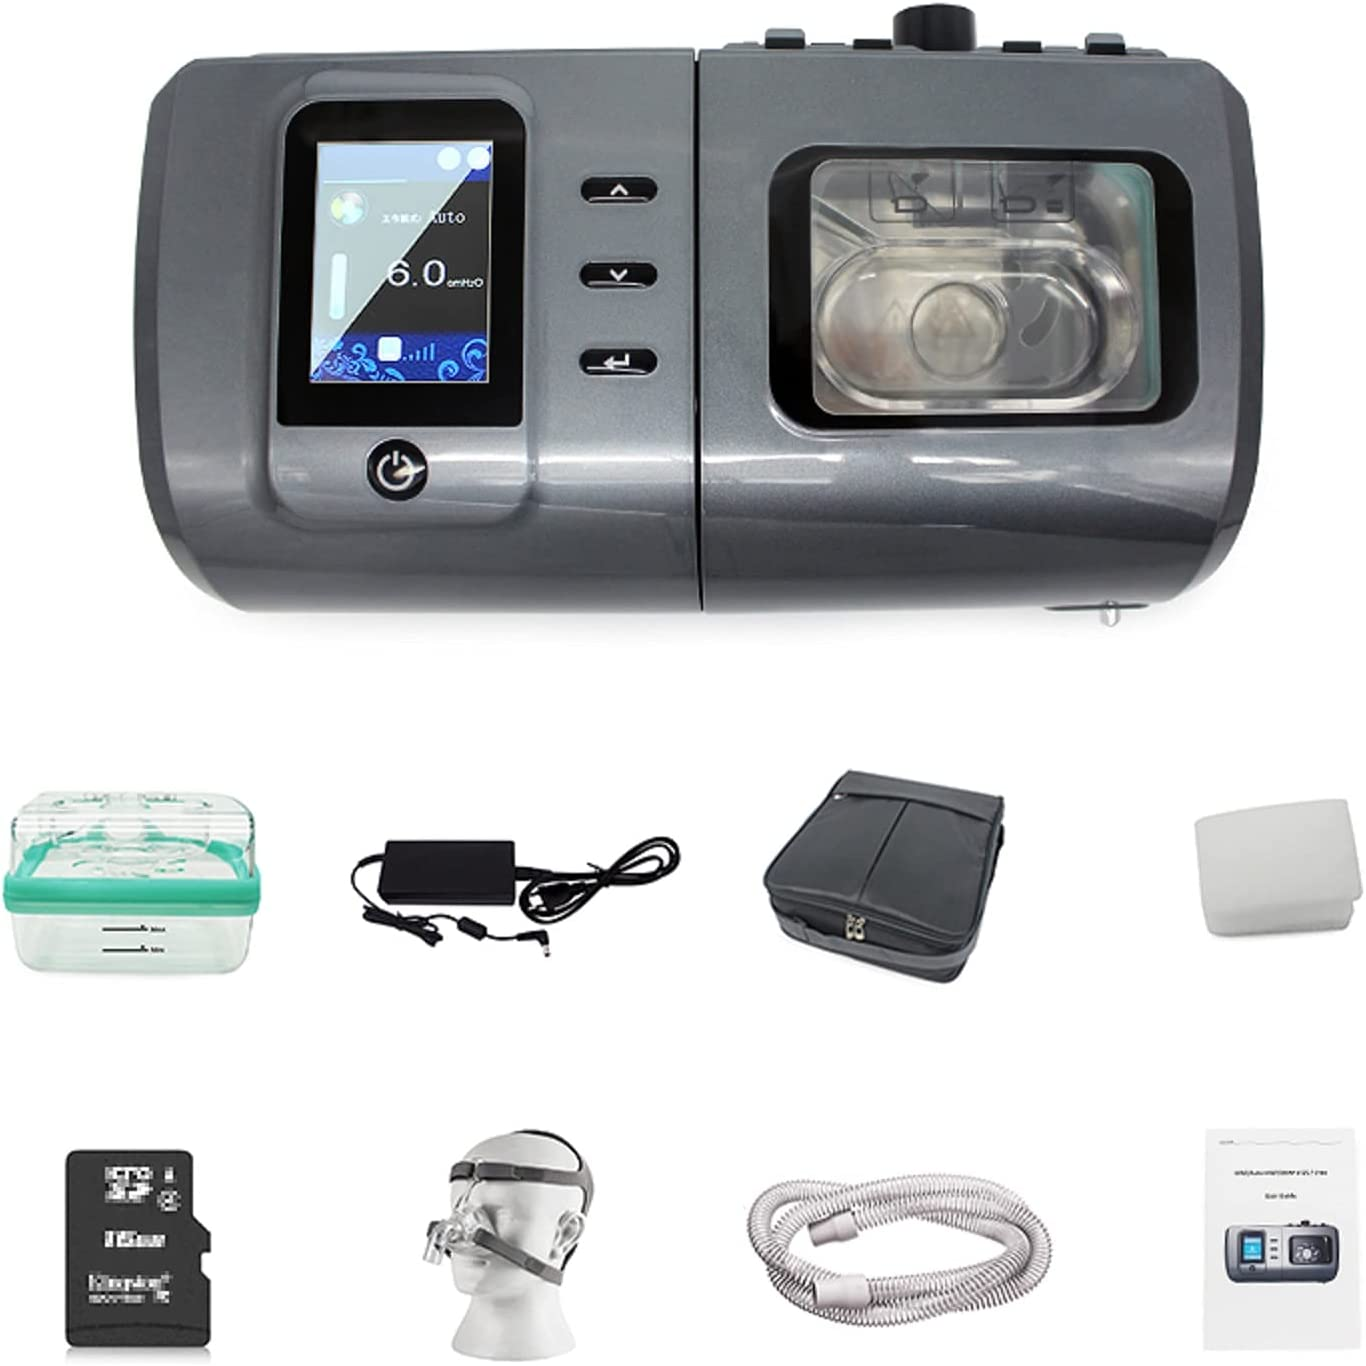 Portable Wellness Device for Home Anti Car Use Snoring Very popular Sale